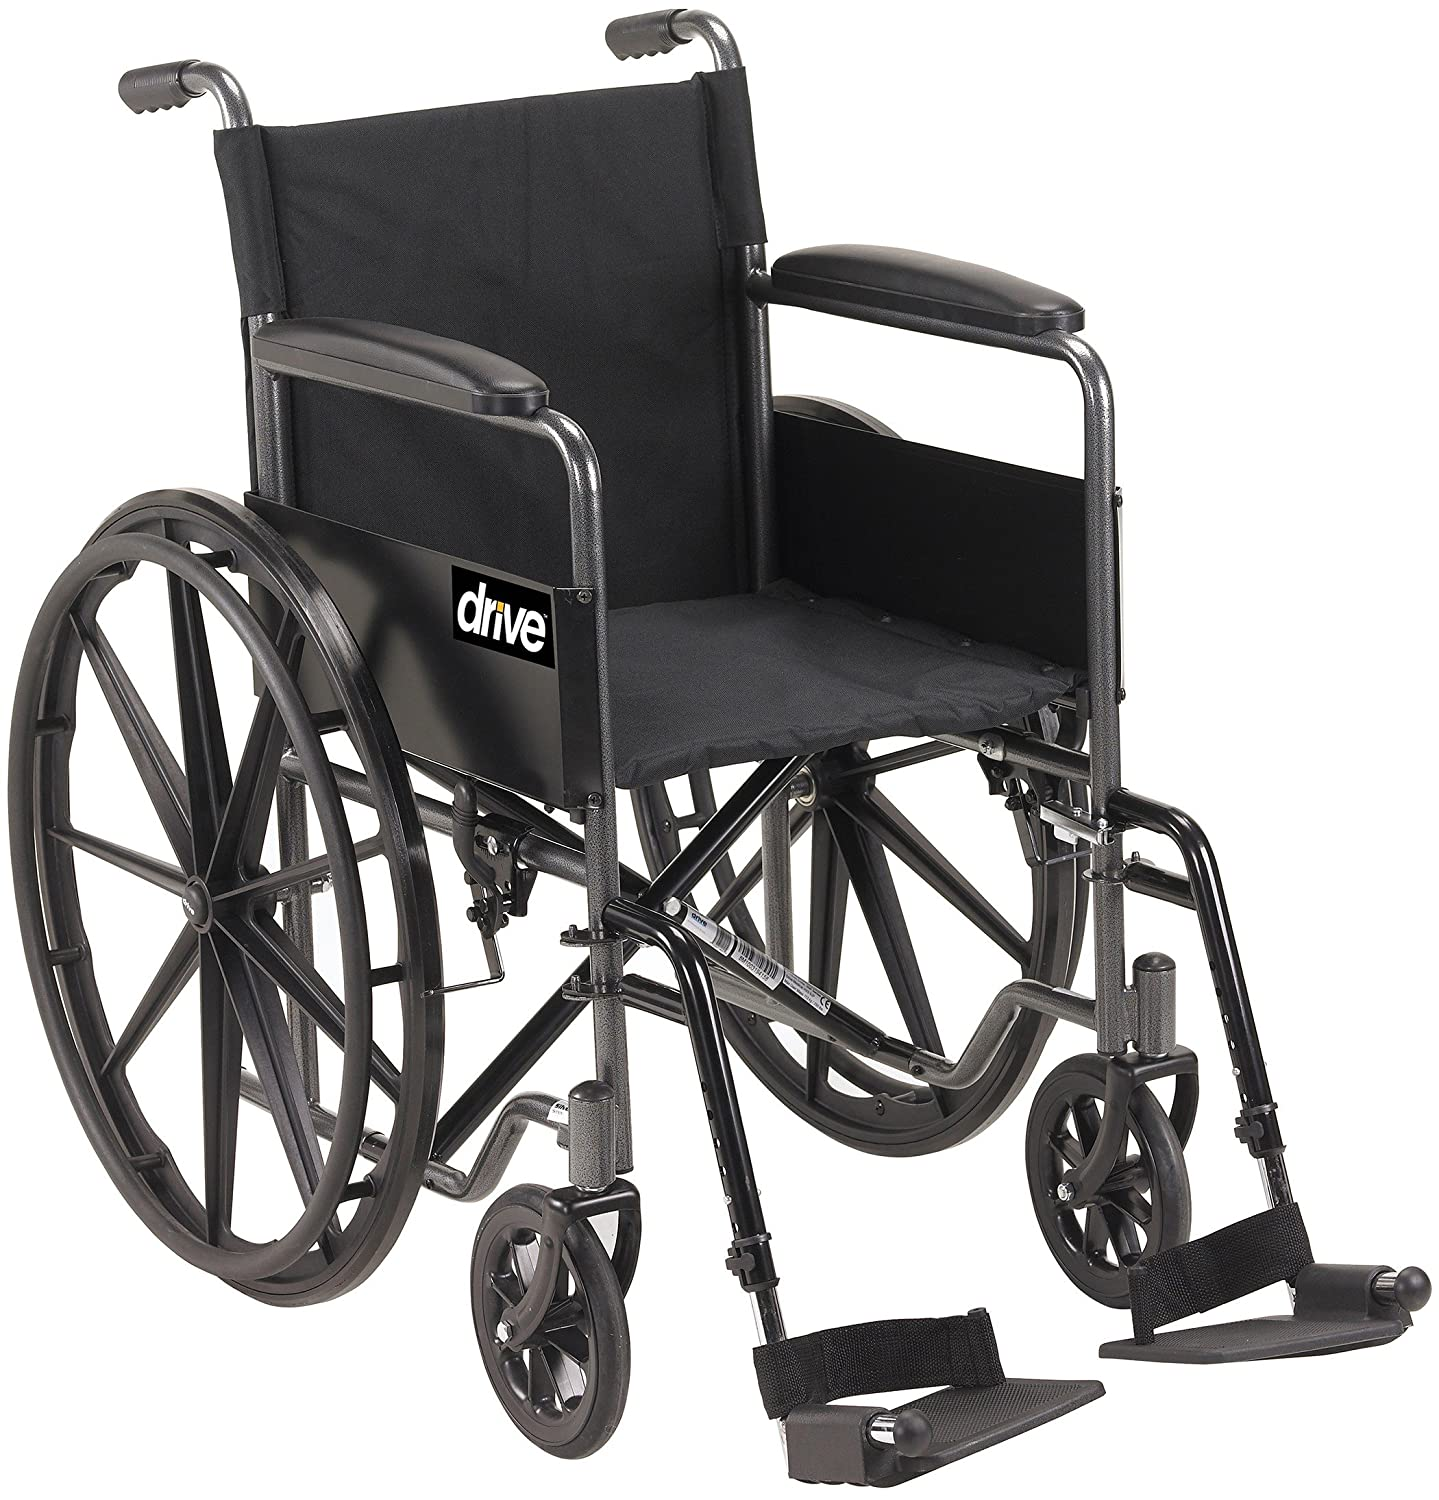 Drive Medical Silver Sport 1 Wheelchair with Full Arms and Swing Away Removable Footrest, Black 914e6mv6NvL._SL1500_